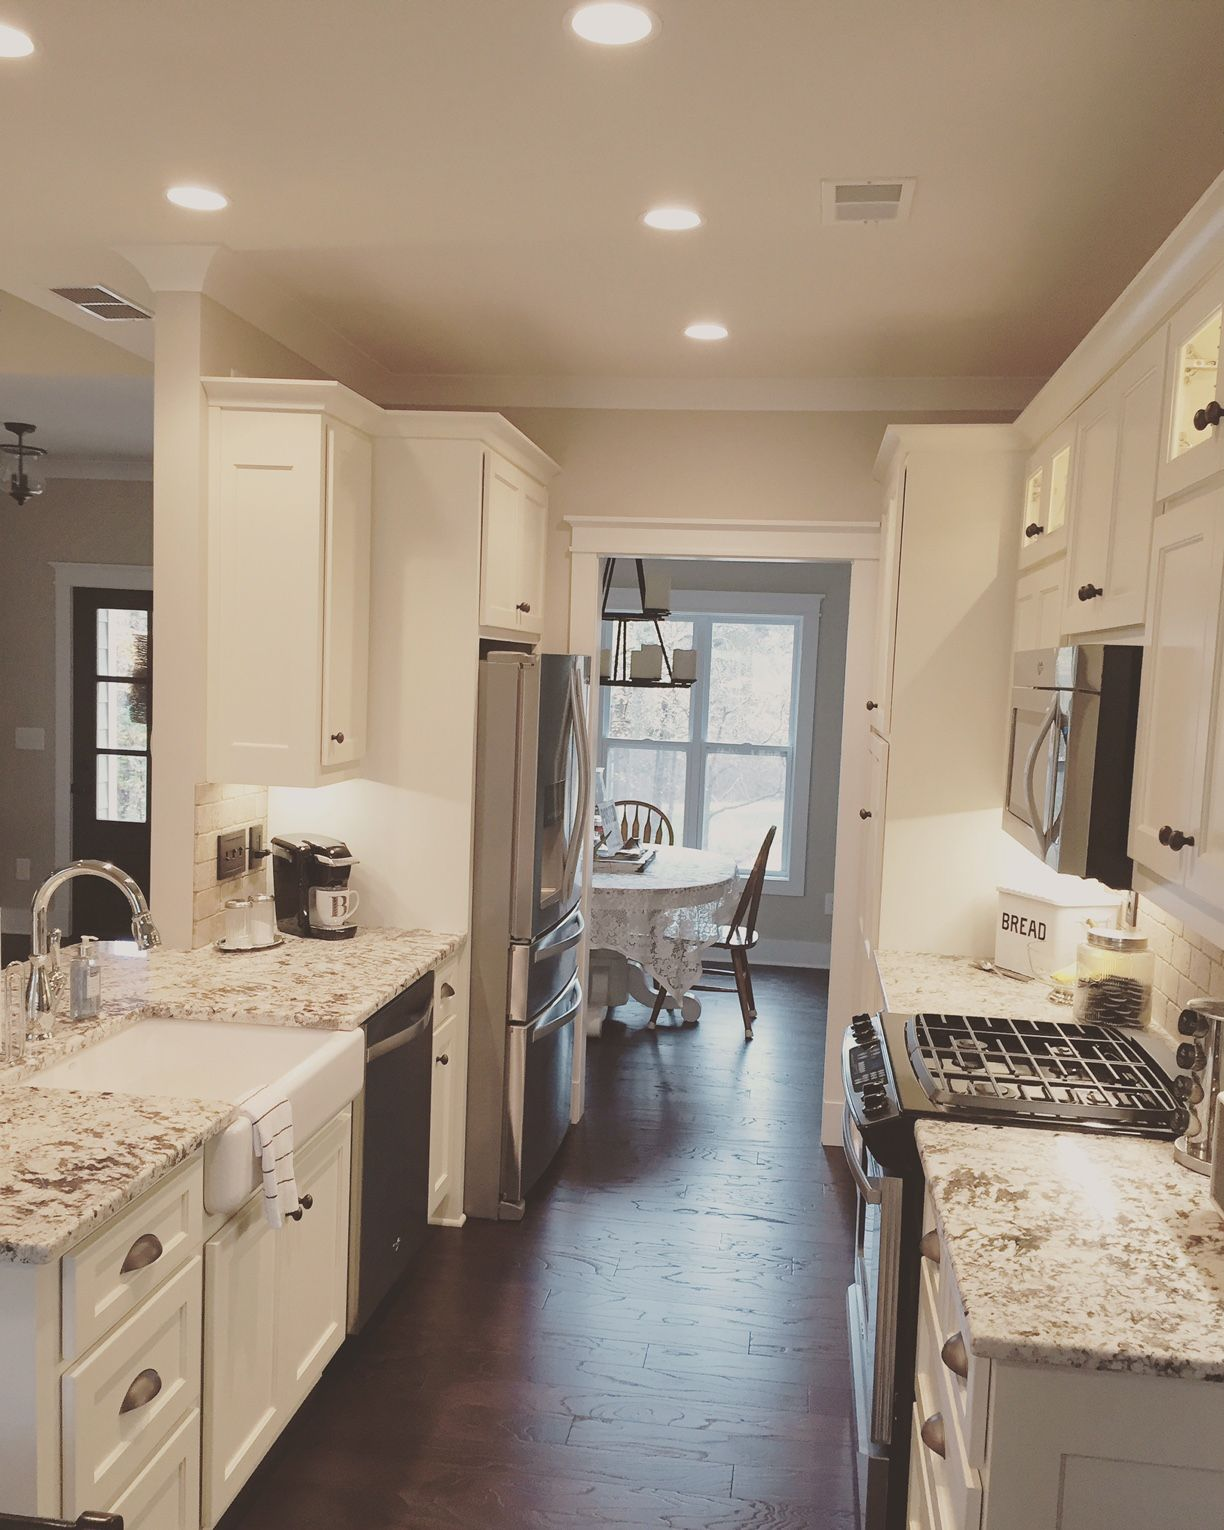 Convert Kitchen To Large Galley Style Partially Open To Dining